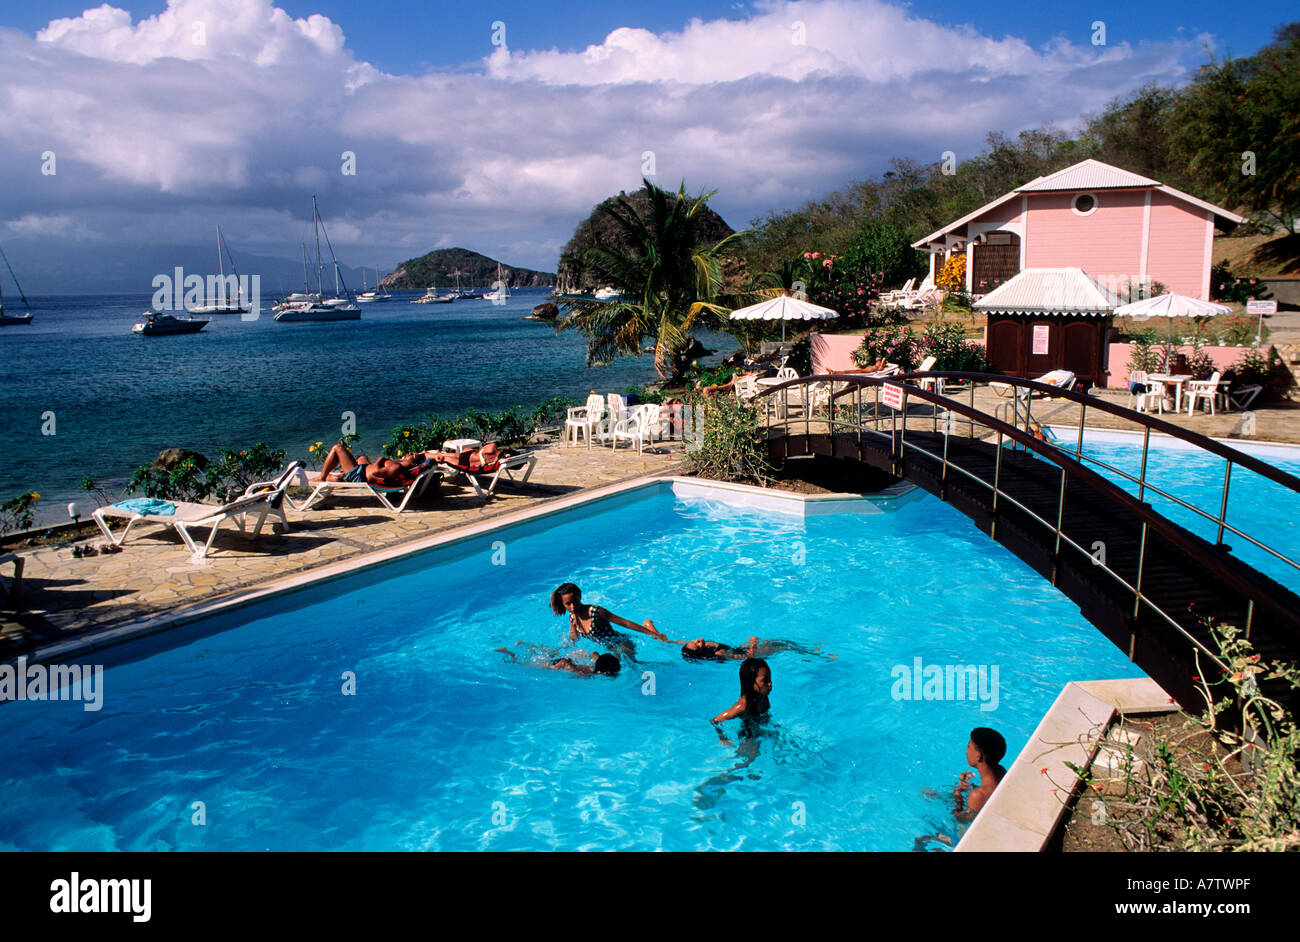 Saint Vincent And The Grenadines Tobago Cays Archipelago Swimming Stock Photo 6807342 Alamy